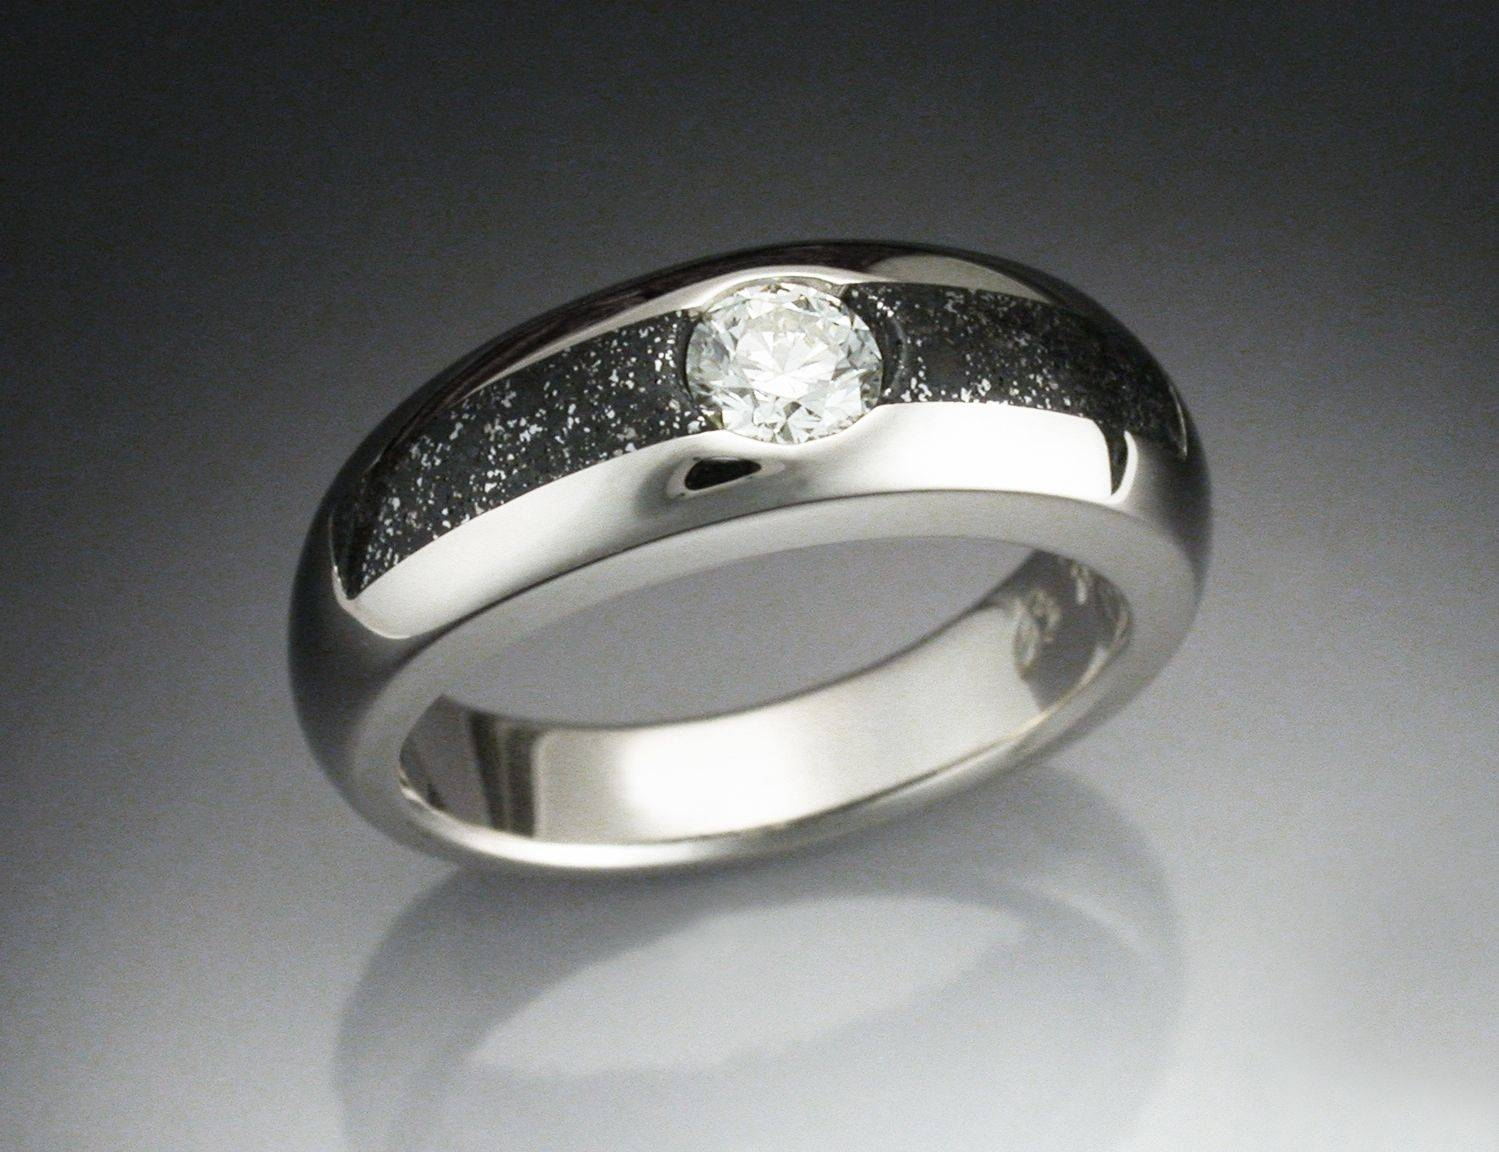 Meteorite Engagement Ring – Jewelry Exhibition For Dinosaur Bone Engagement Rings (View 13 of 15)